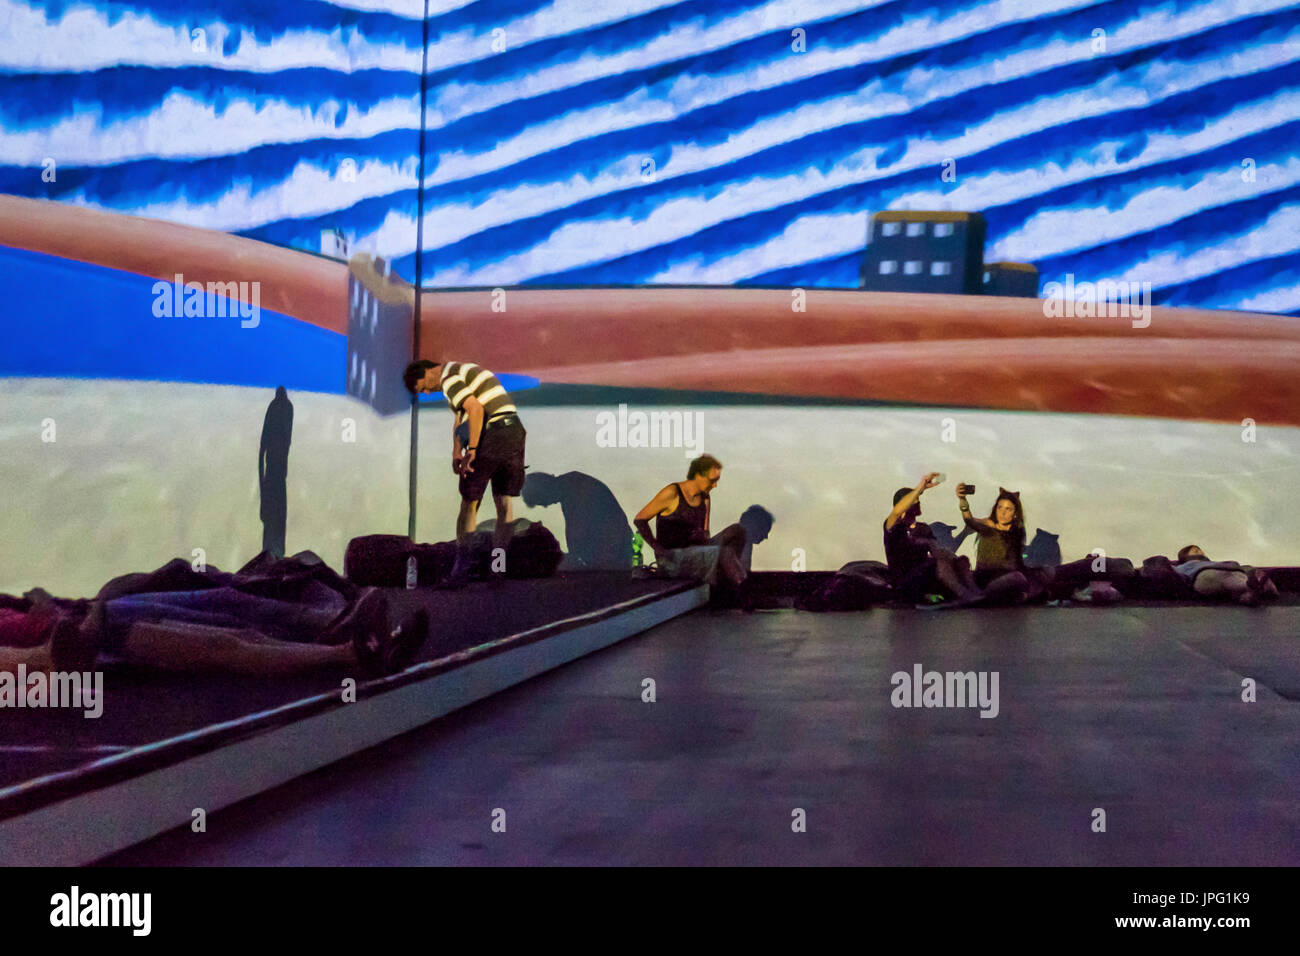 Berlin, Germany, 1st August 2017. People enjoy a multimedia video art show 'From Monet to Kandinsky.Visions Alive' . The exhibition presents the works of 16 Modernist artists on 7 meter screens placed at different angles in two viewing rooms. Credit: Eden Breitz/Alamy Live News - Stock Image